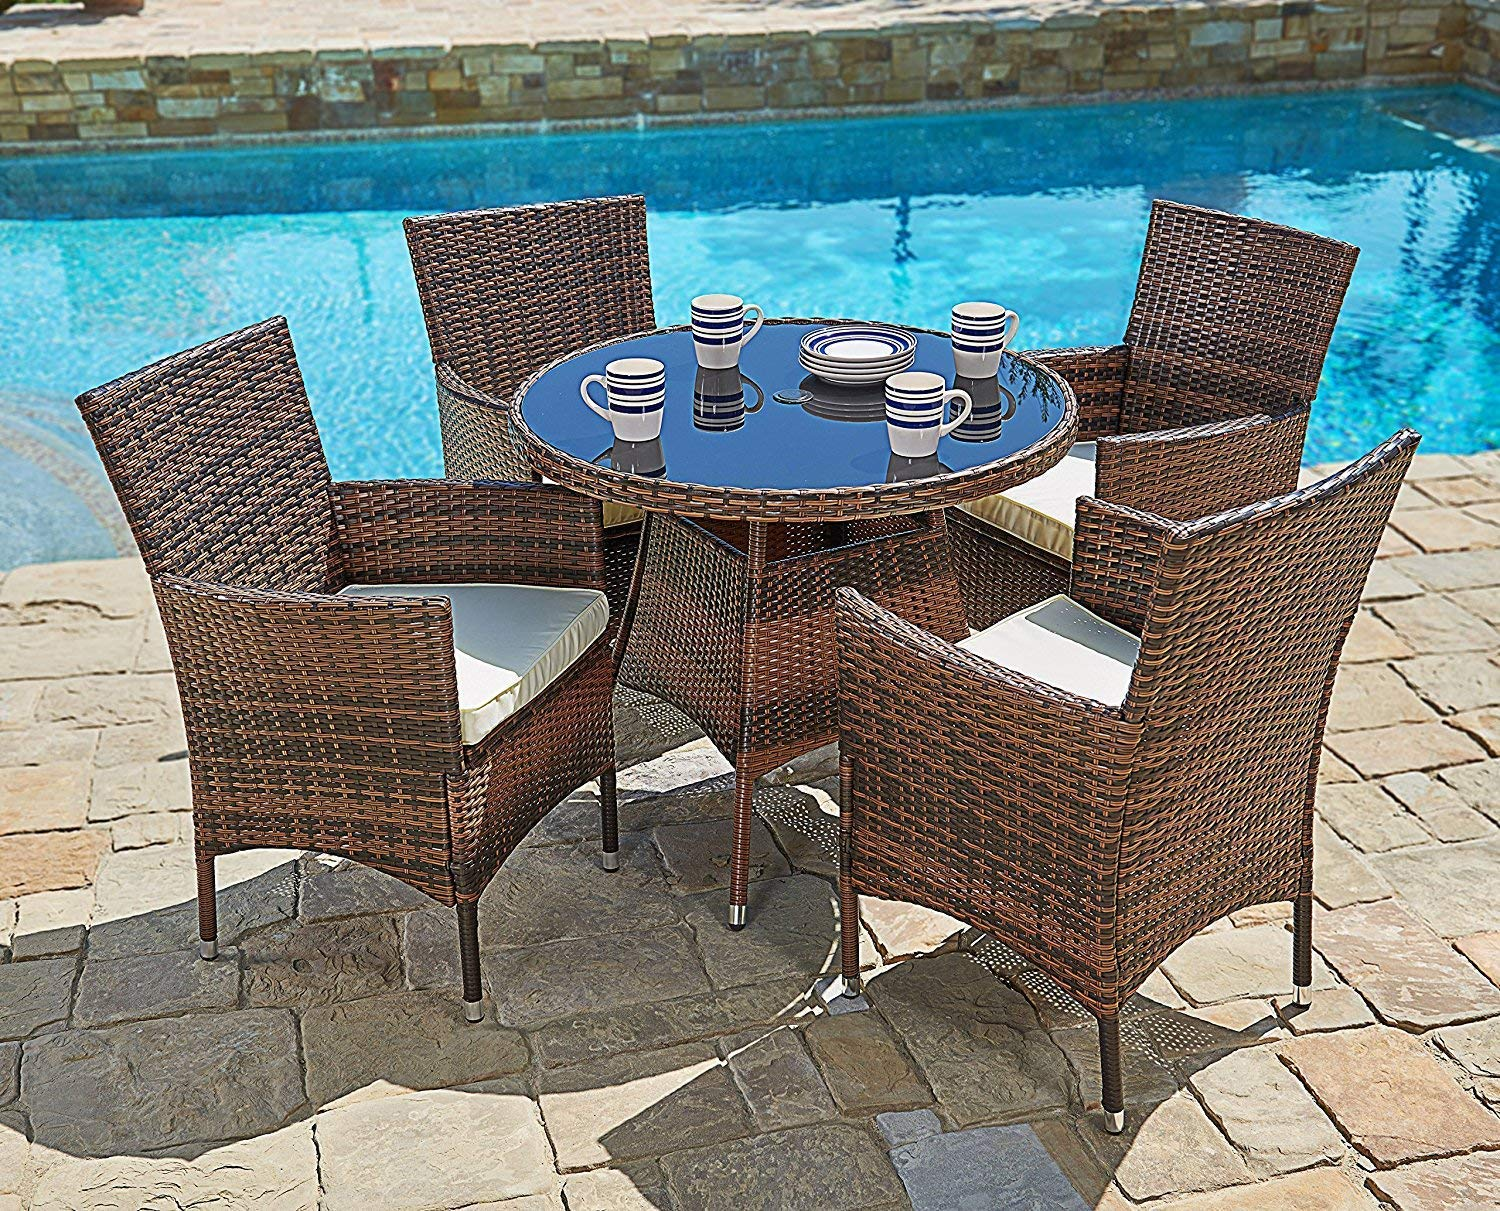 suncrown 5 piece outdoor patio dining set wicker round dining table and chairs with washable cushions tempered glass tabletop